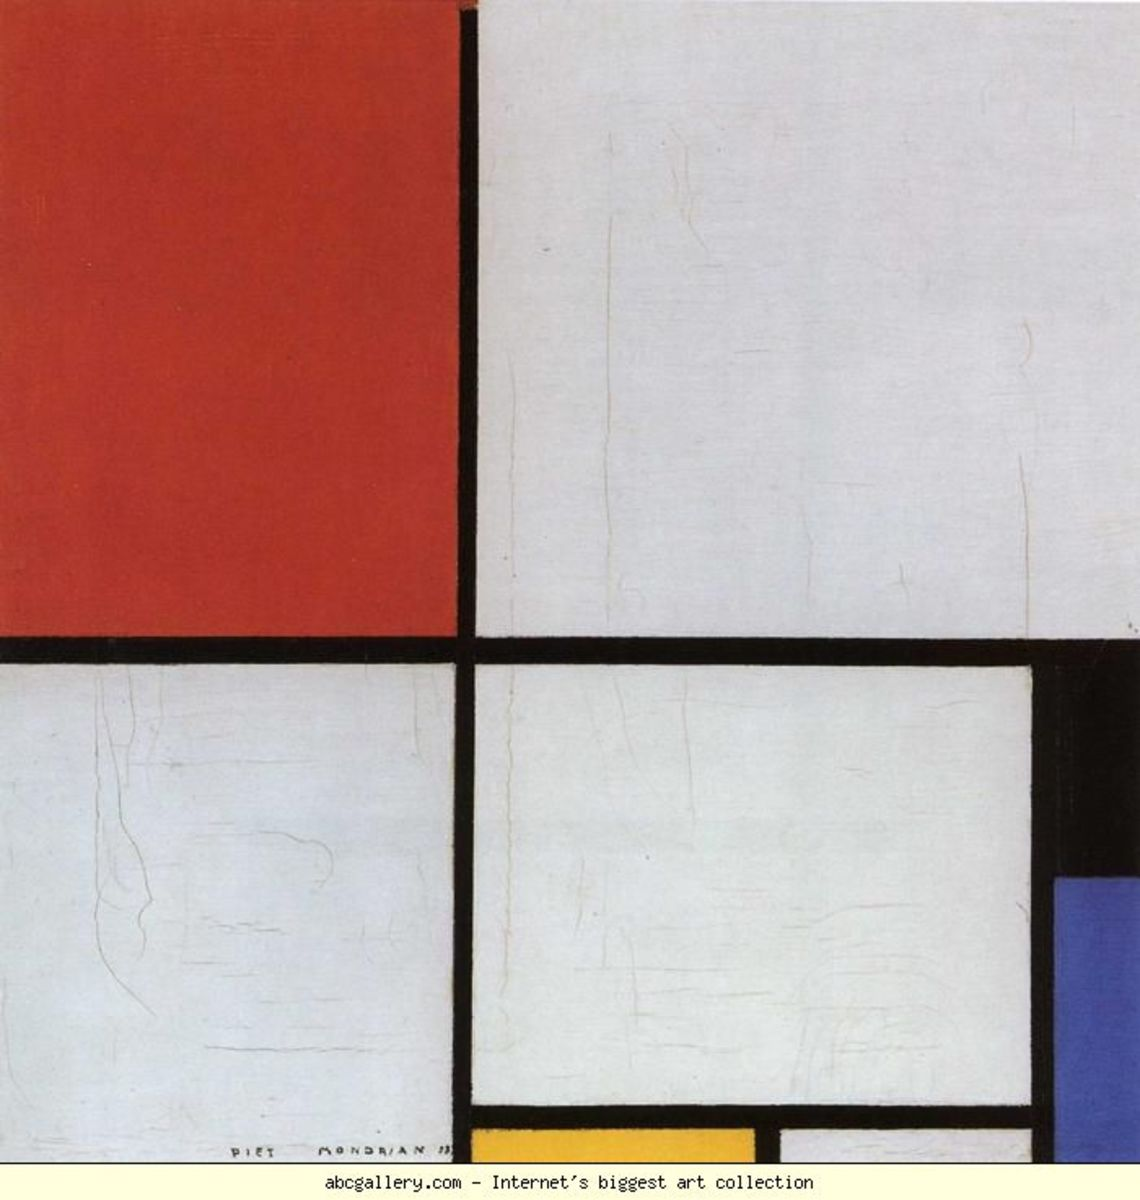 Piet Mondrian art Composition (1938) in red, blue and yellow - Analysis of Composition (abstract art movement)